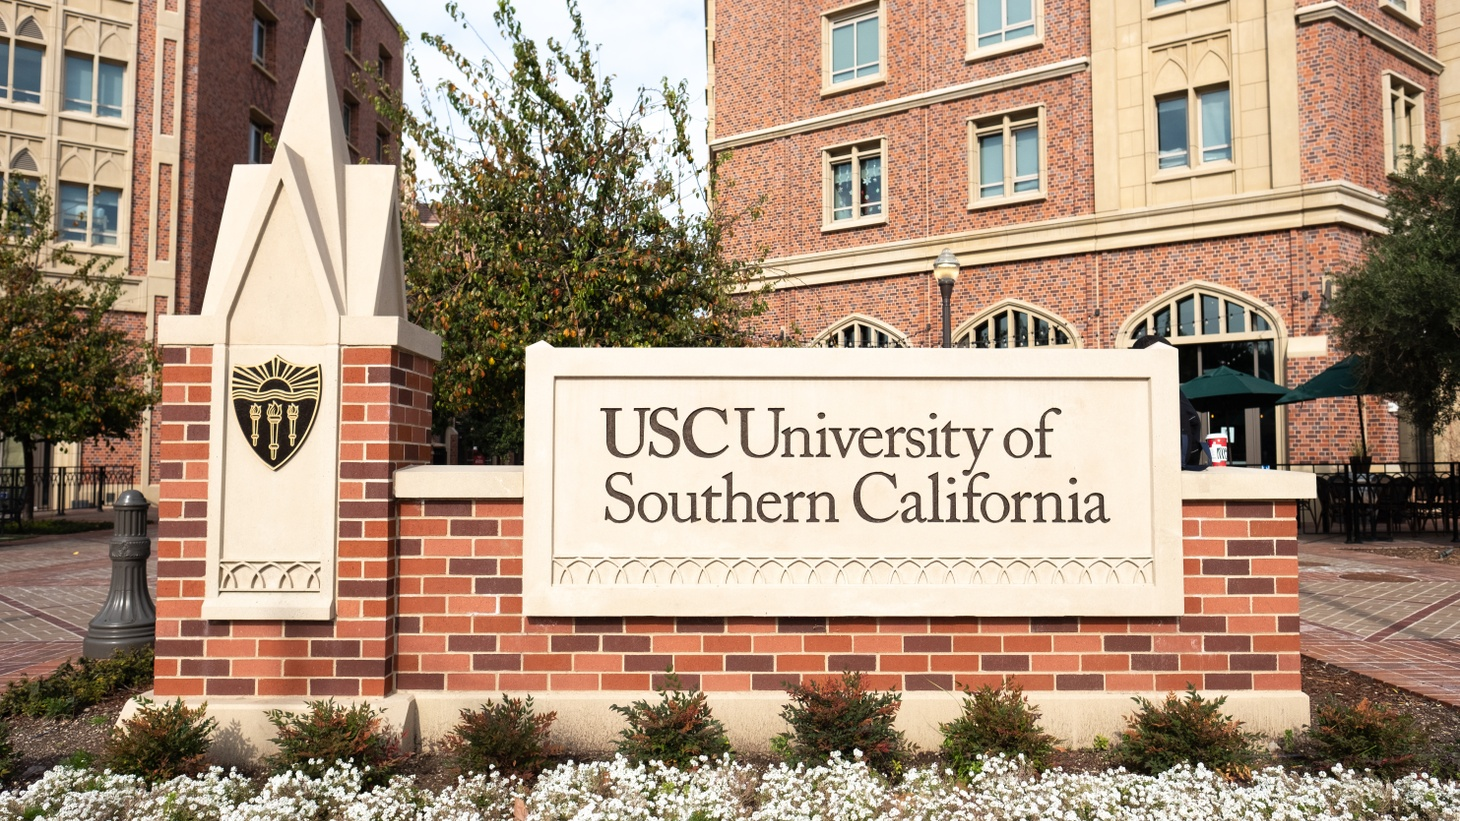 It's unclear whether students will physically attend classes at the University of Southern California and other colleges this August — due to COVID-19 and social distancing.